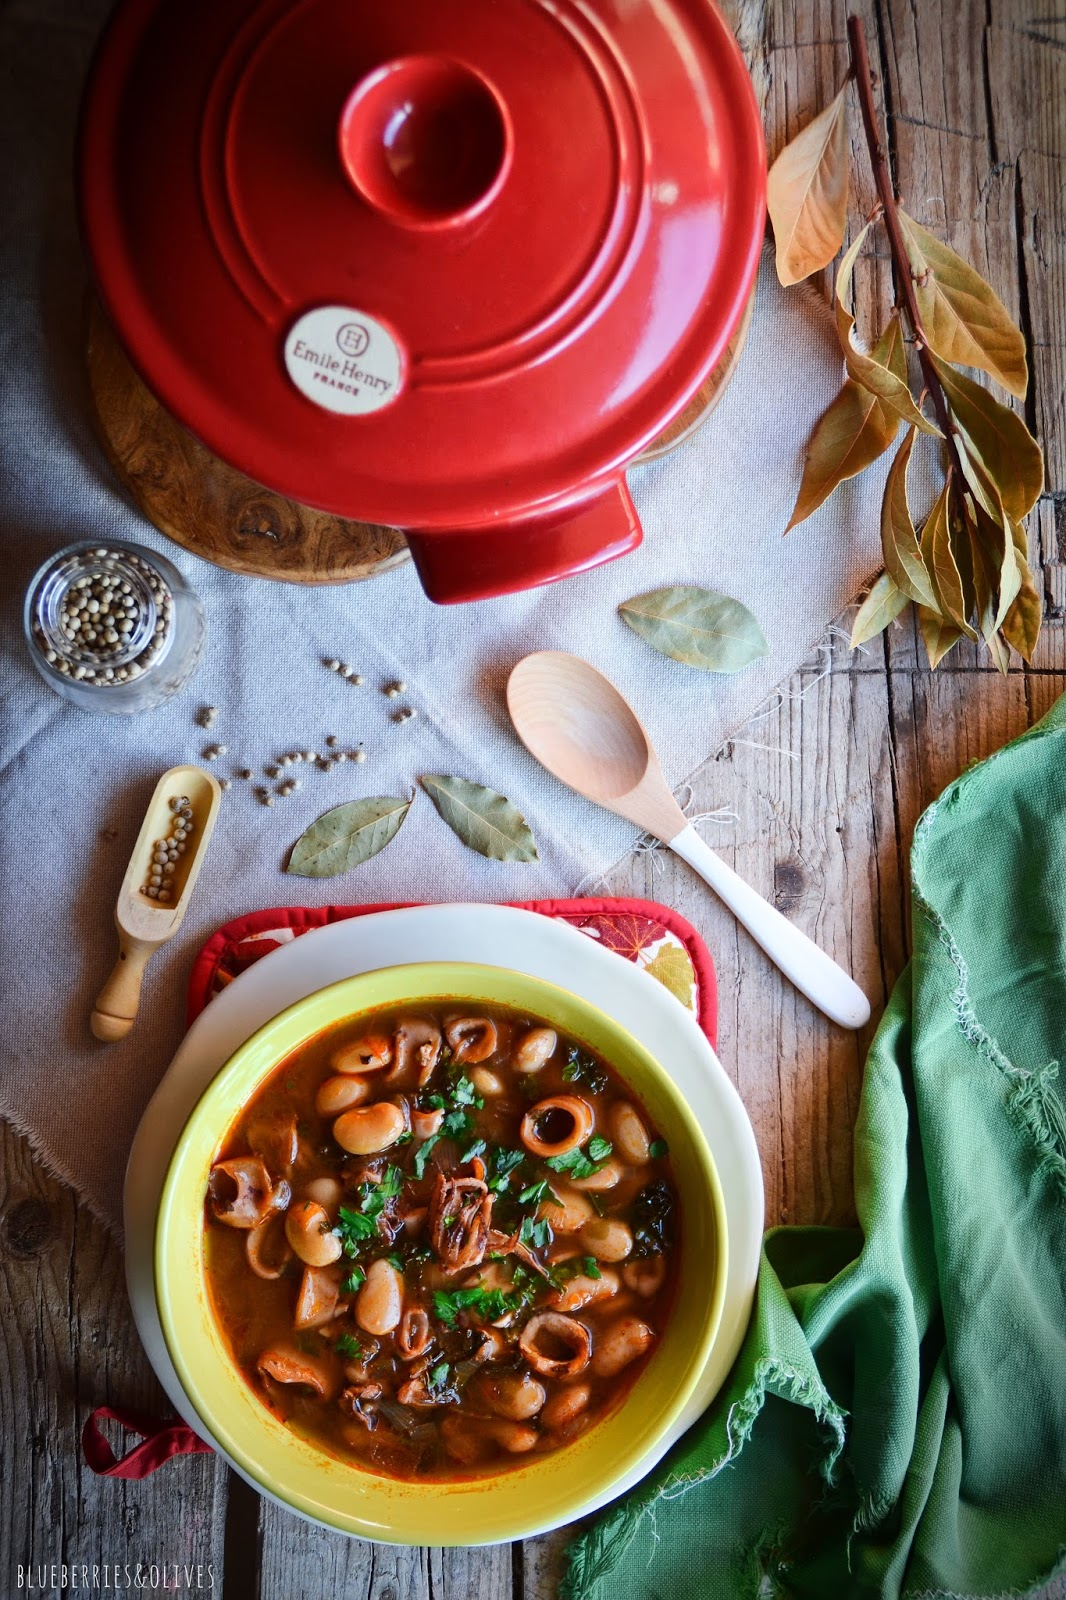 WHITE BEAN, KALE AND SQUID STEW IN COCOTTE